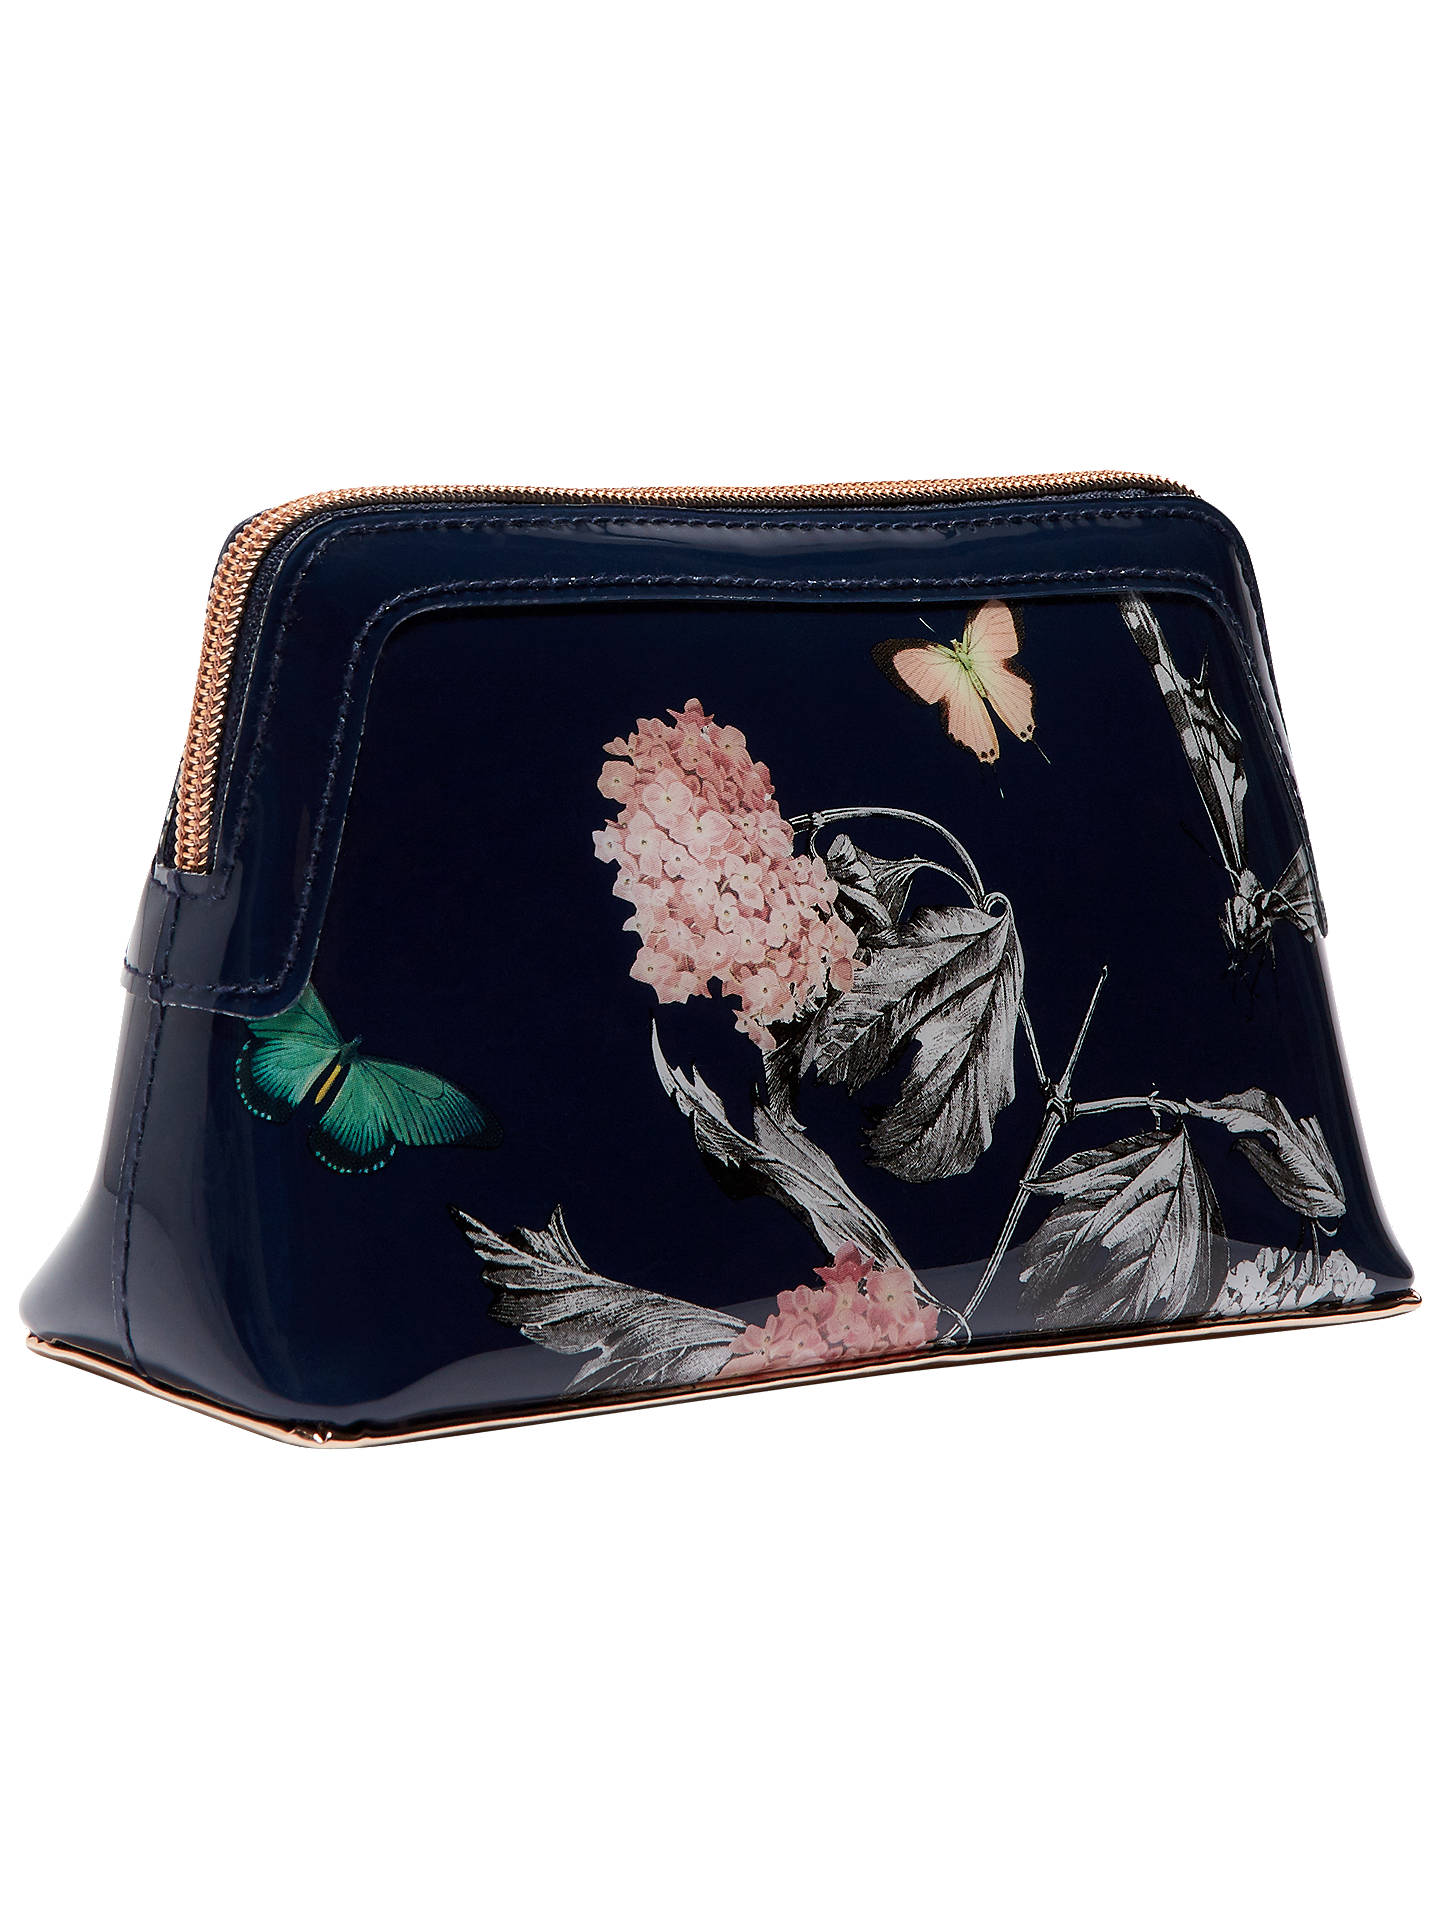 BuyTed Baker Nylon Wash Bag, Floral Online at johnlewis.com